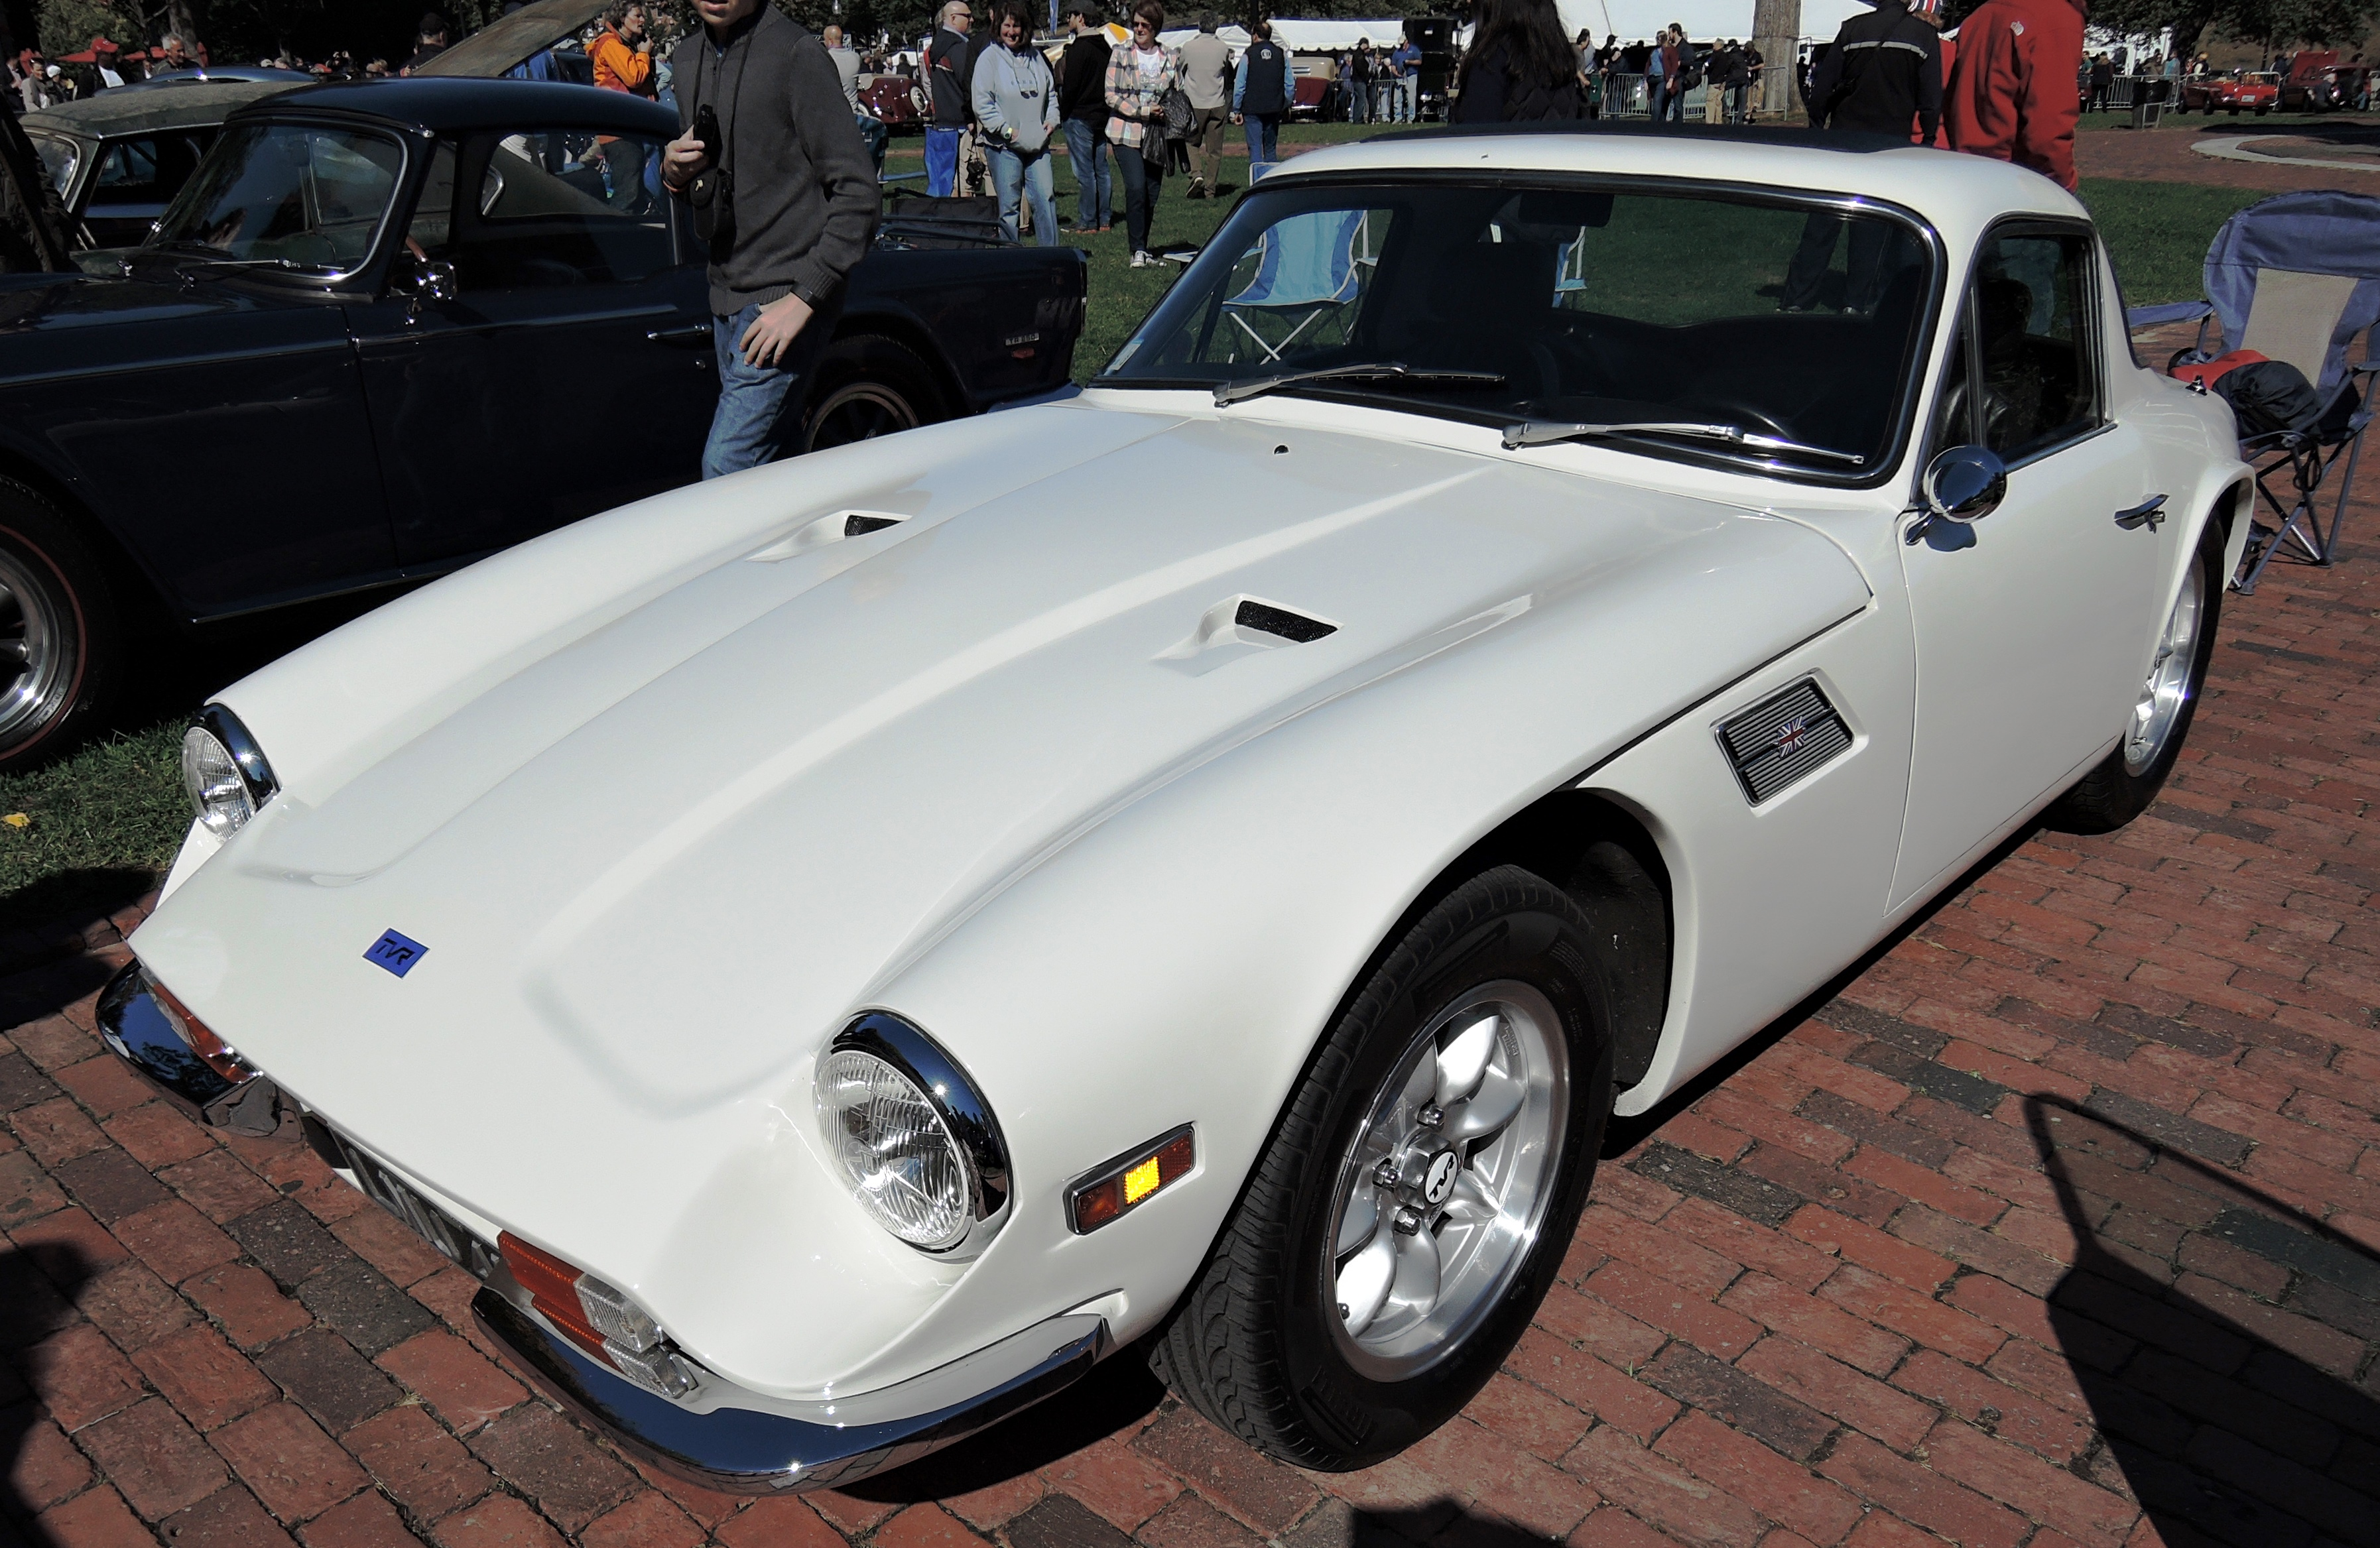 white 1974 TVR 2500M - The Boston Cup on Boston Common